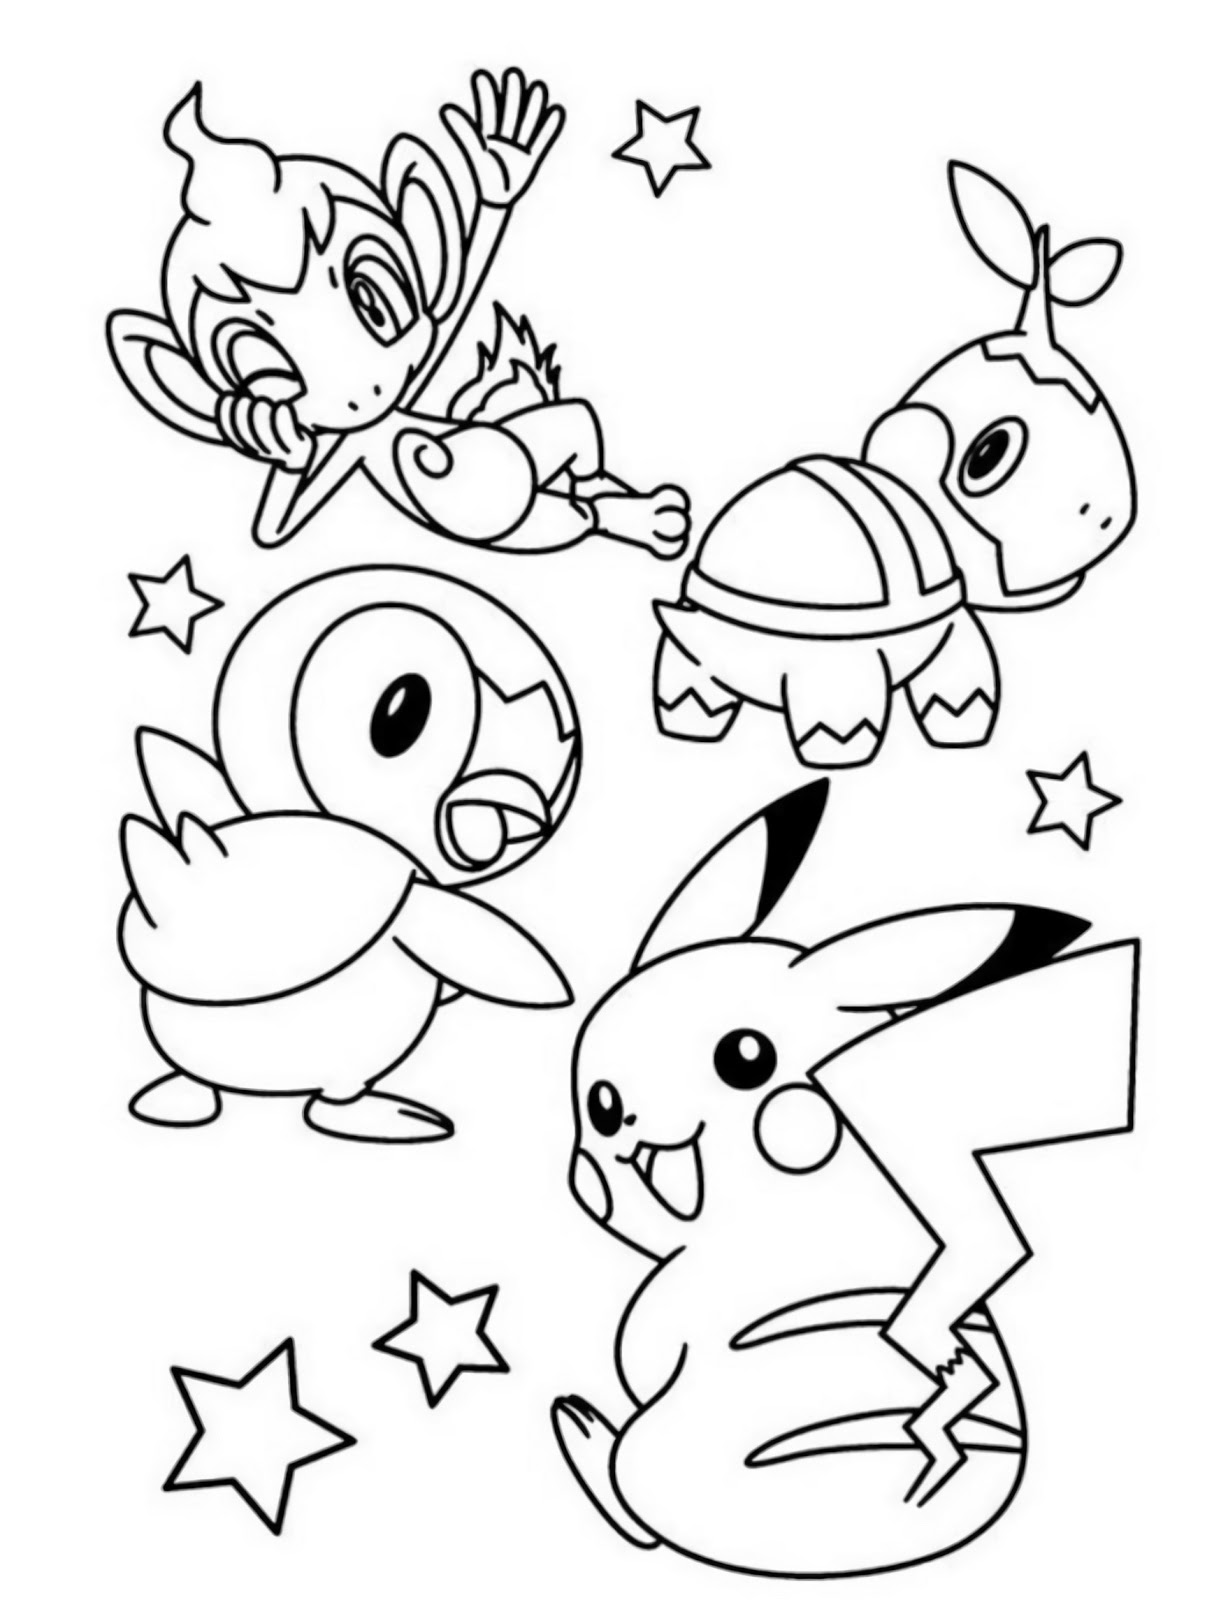 Pokemon Pikachu Coloring Pages Printable - Free Pokemon Coloring Pages